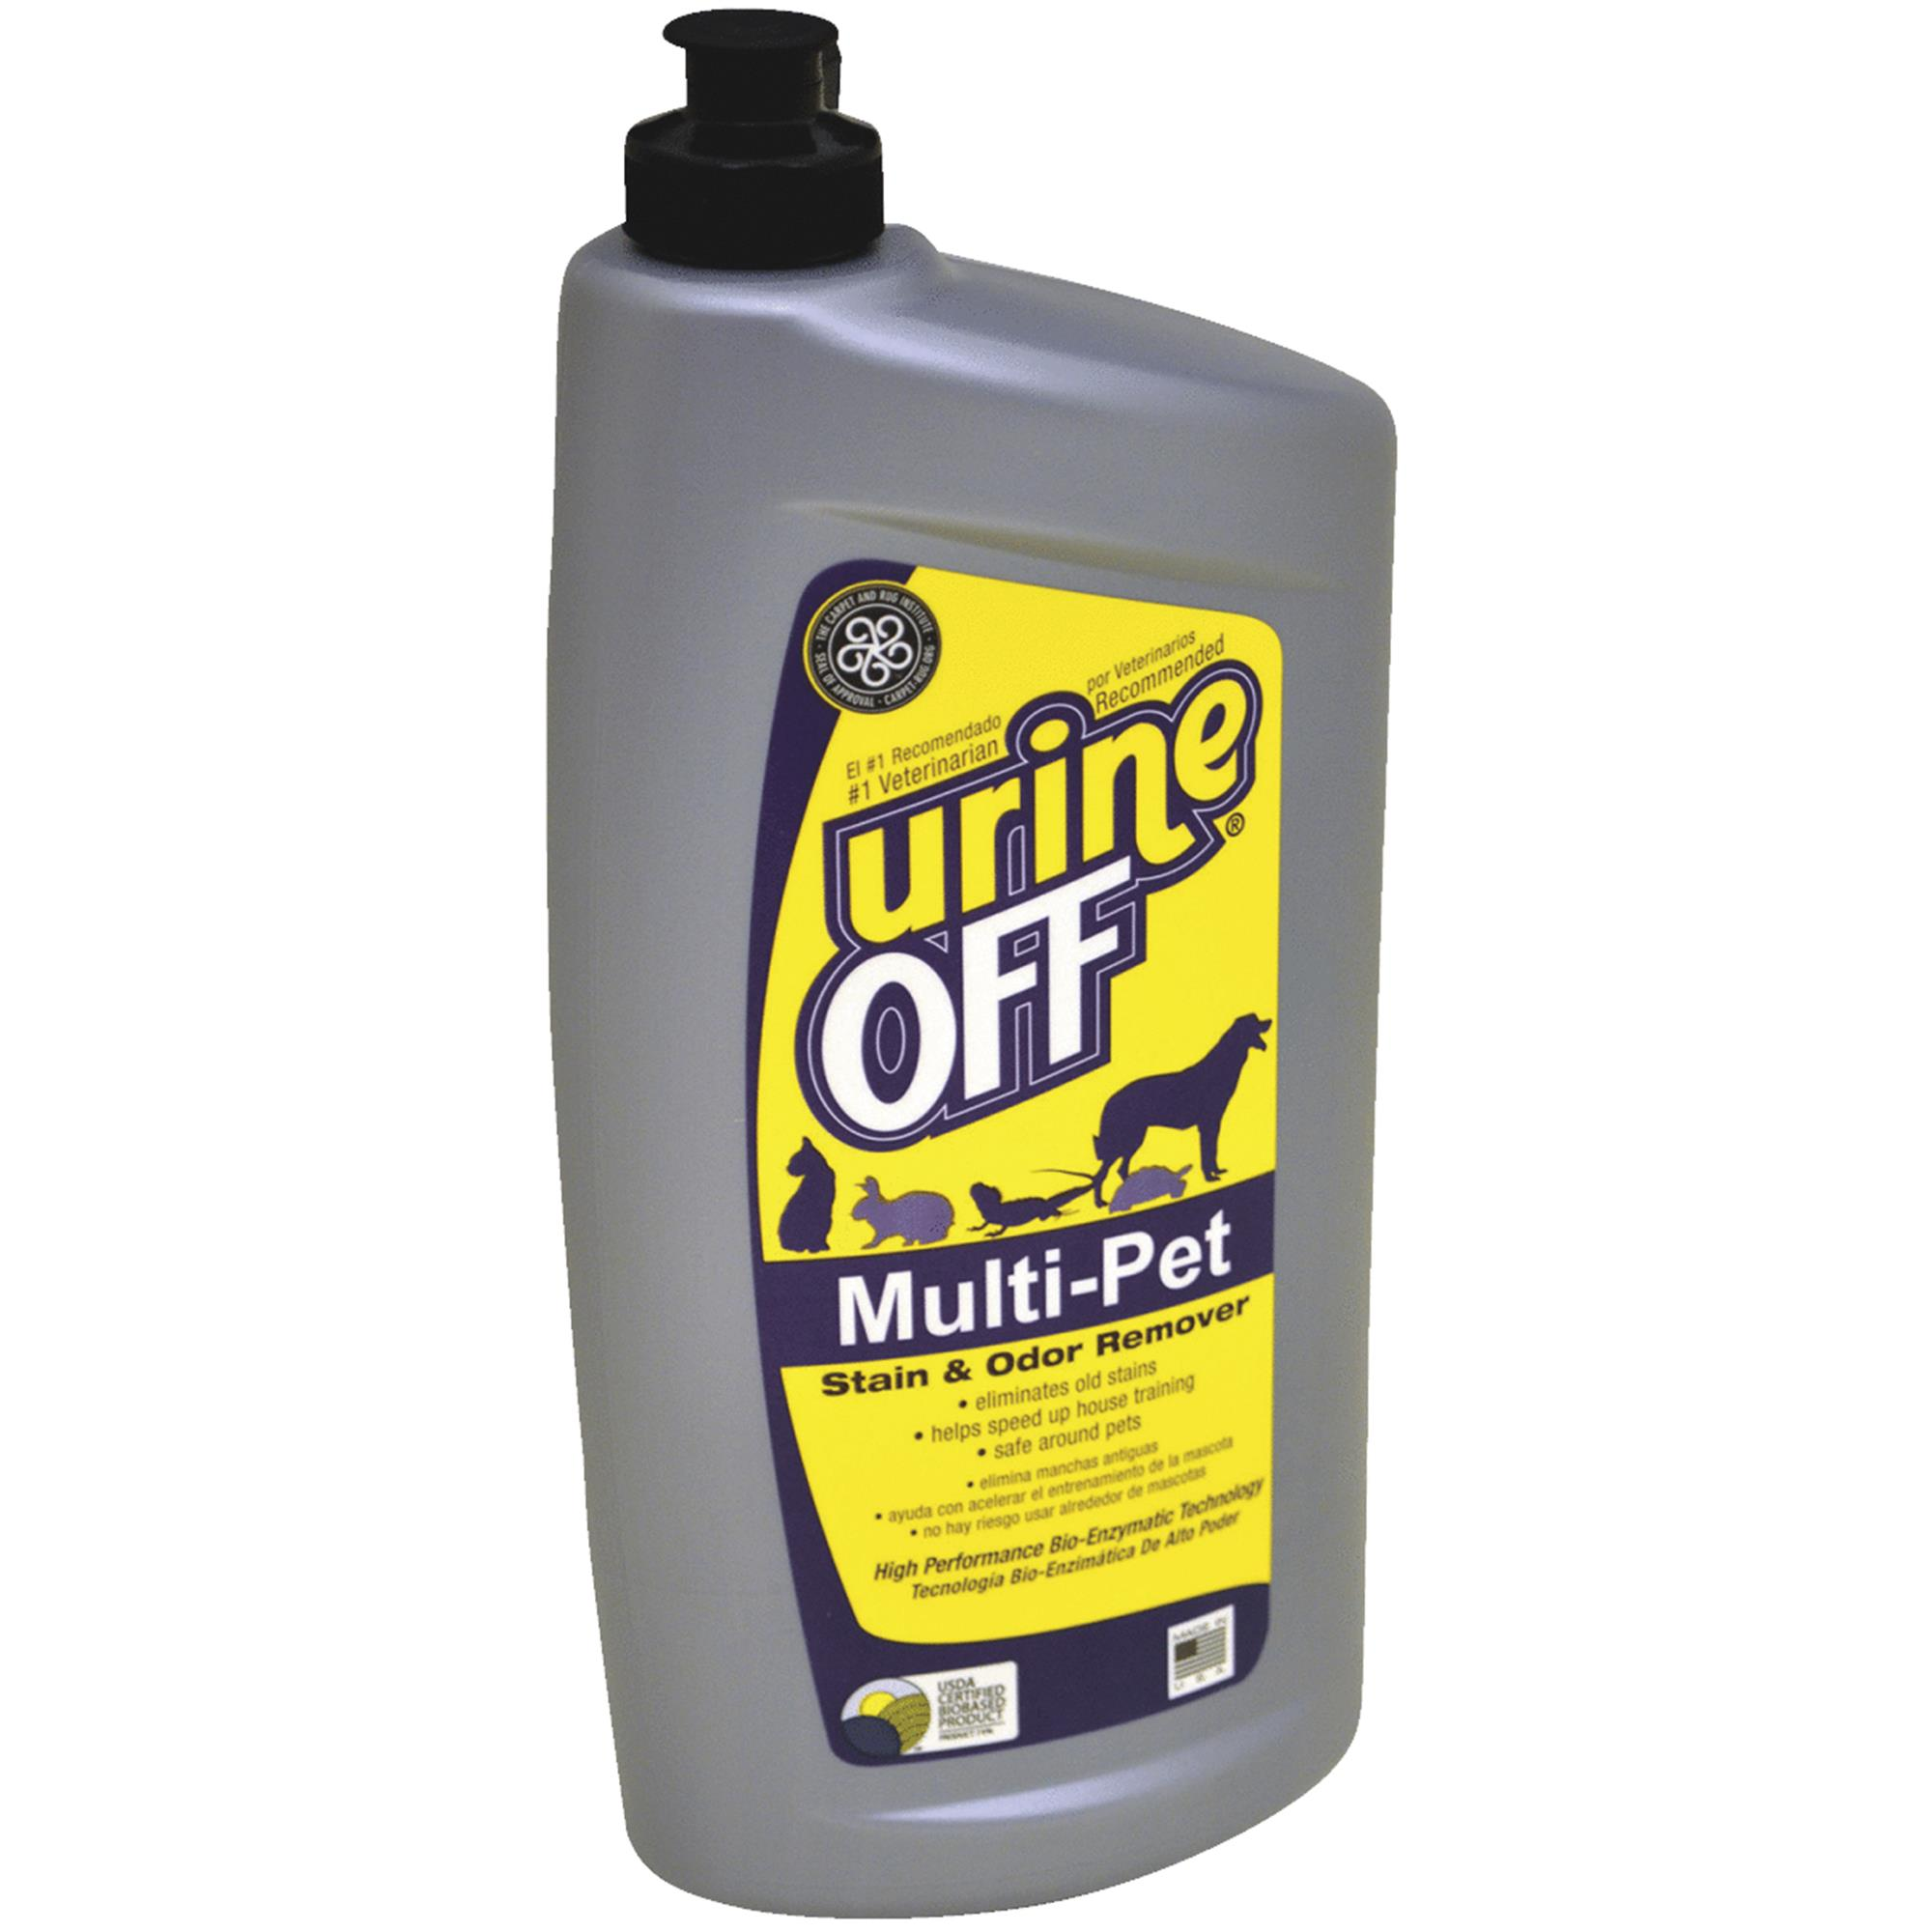 Urine Off Multi-Pet 32 oz